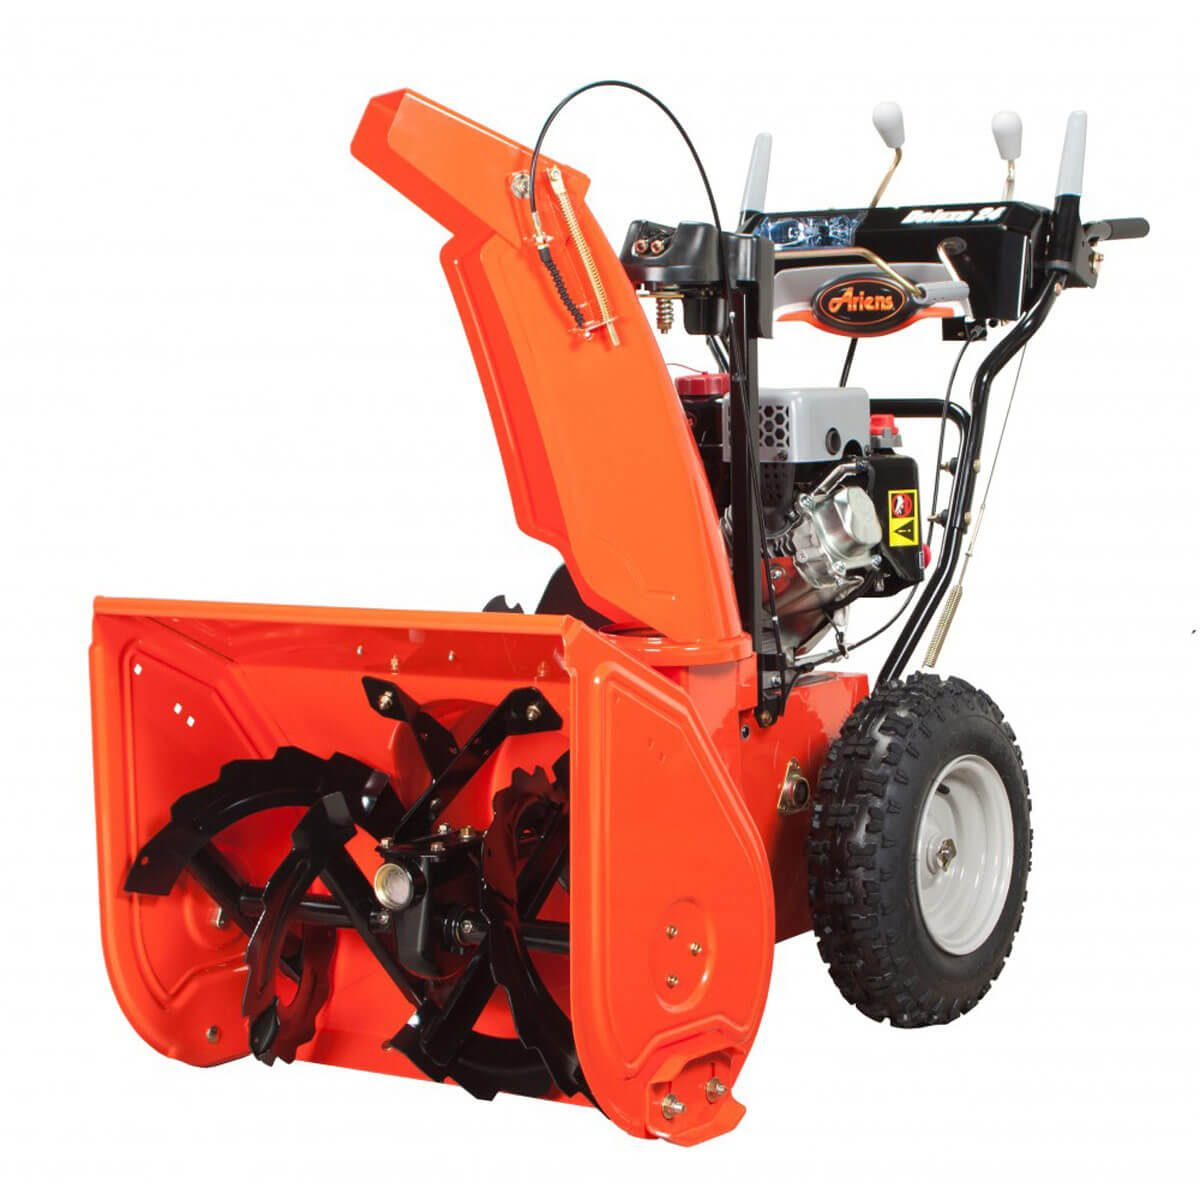 Ariens Two-Stage Snow Thrower with Electric Start